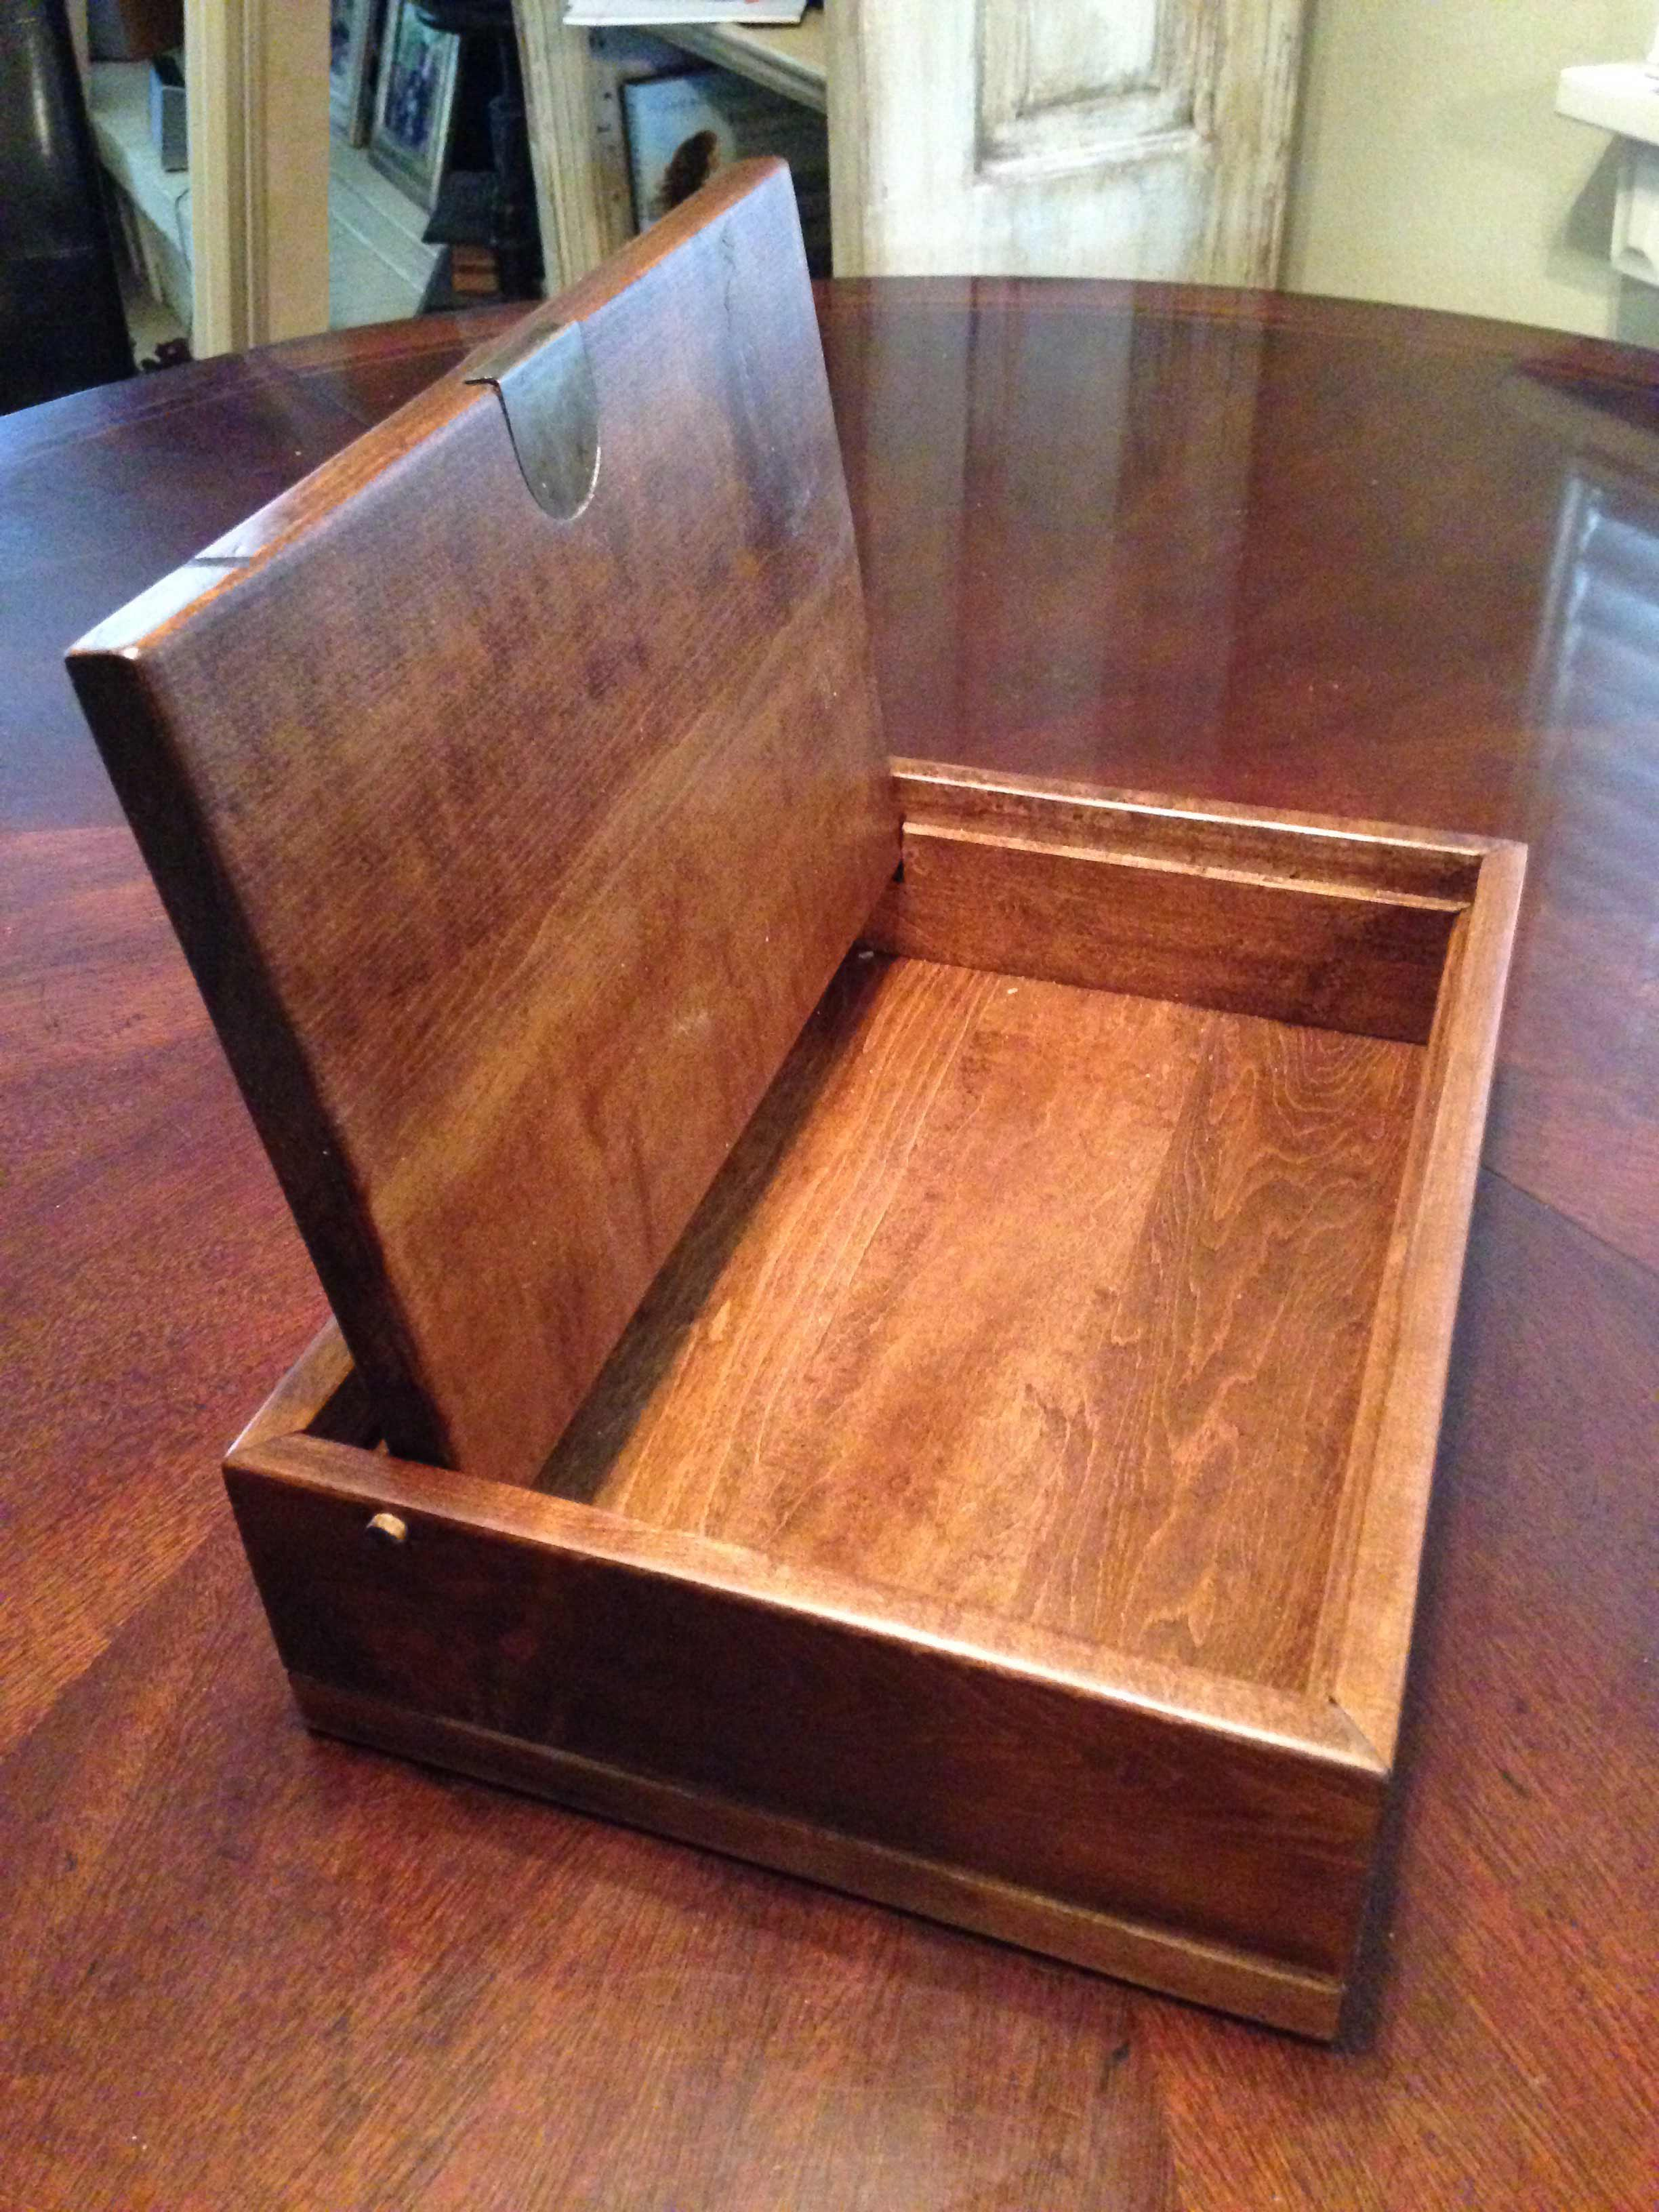 how to build a small wooden box using the parts from an old dresser jim cardon customs. Black Bedroom Furniture Sets. Home Design Ideas